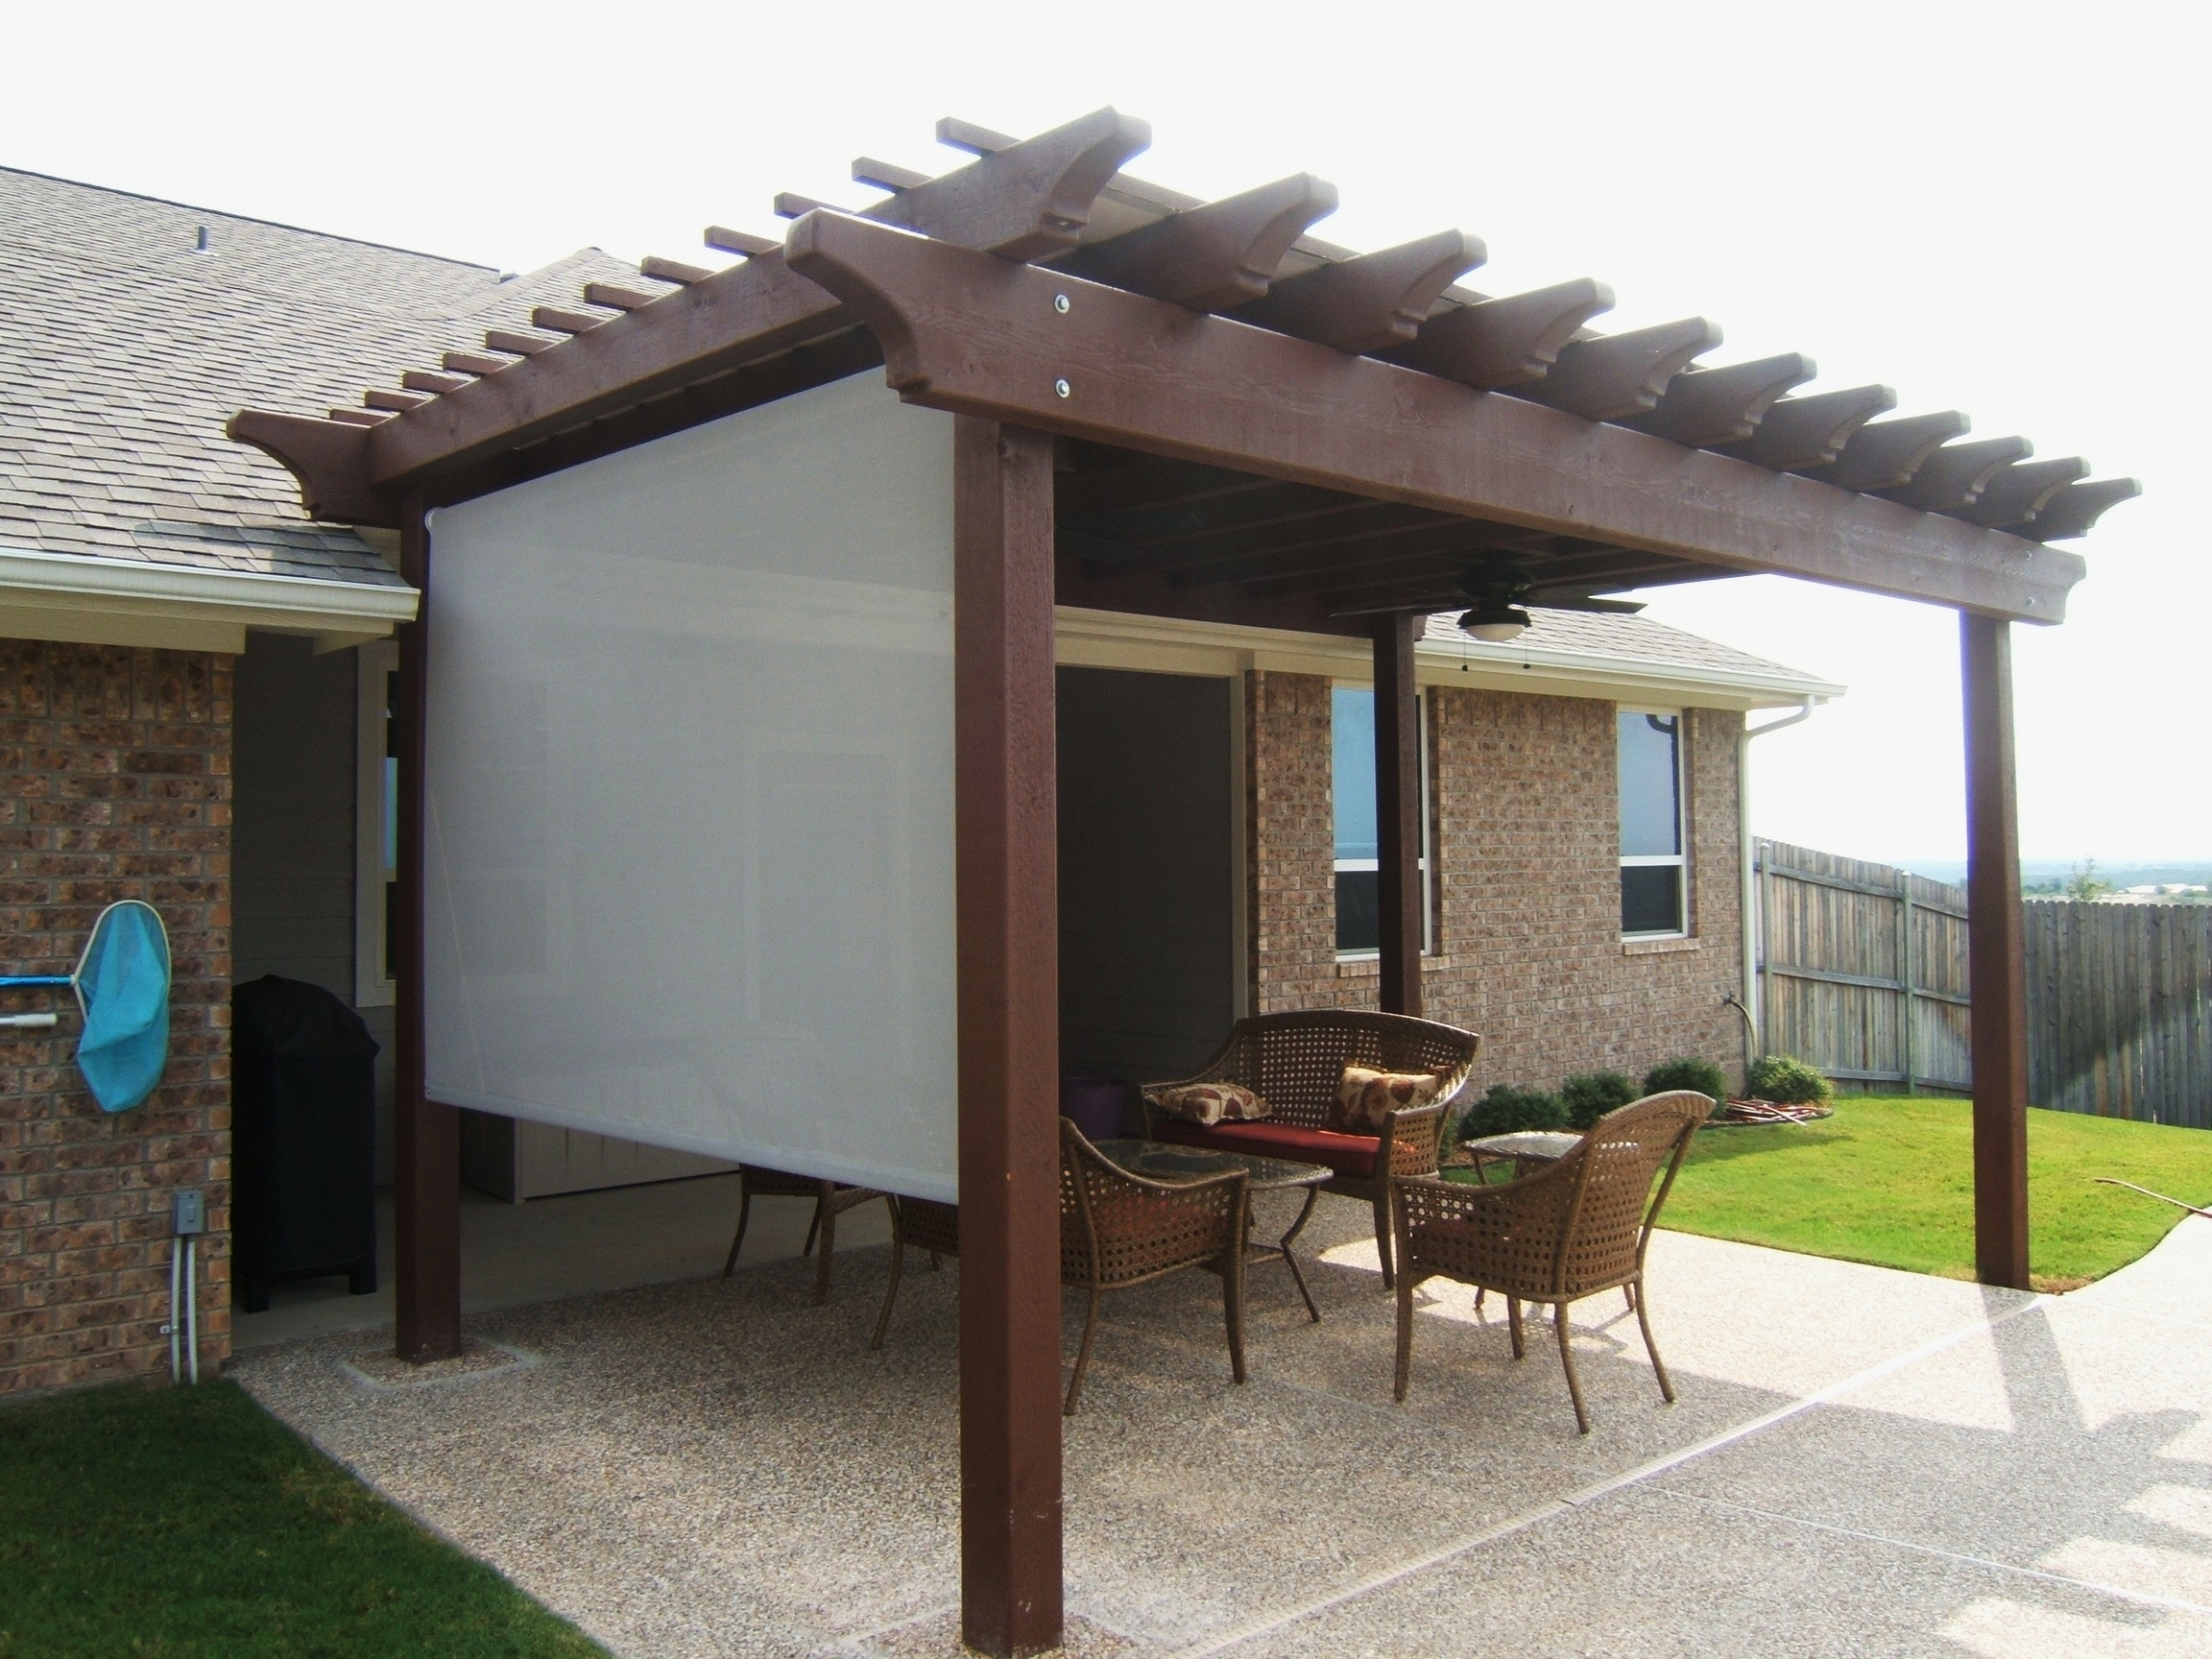 Image of: Sun Shade For Decks Patio Pergola Privacy Sunshade Blind Outdoors Windows Cover